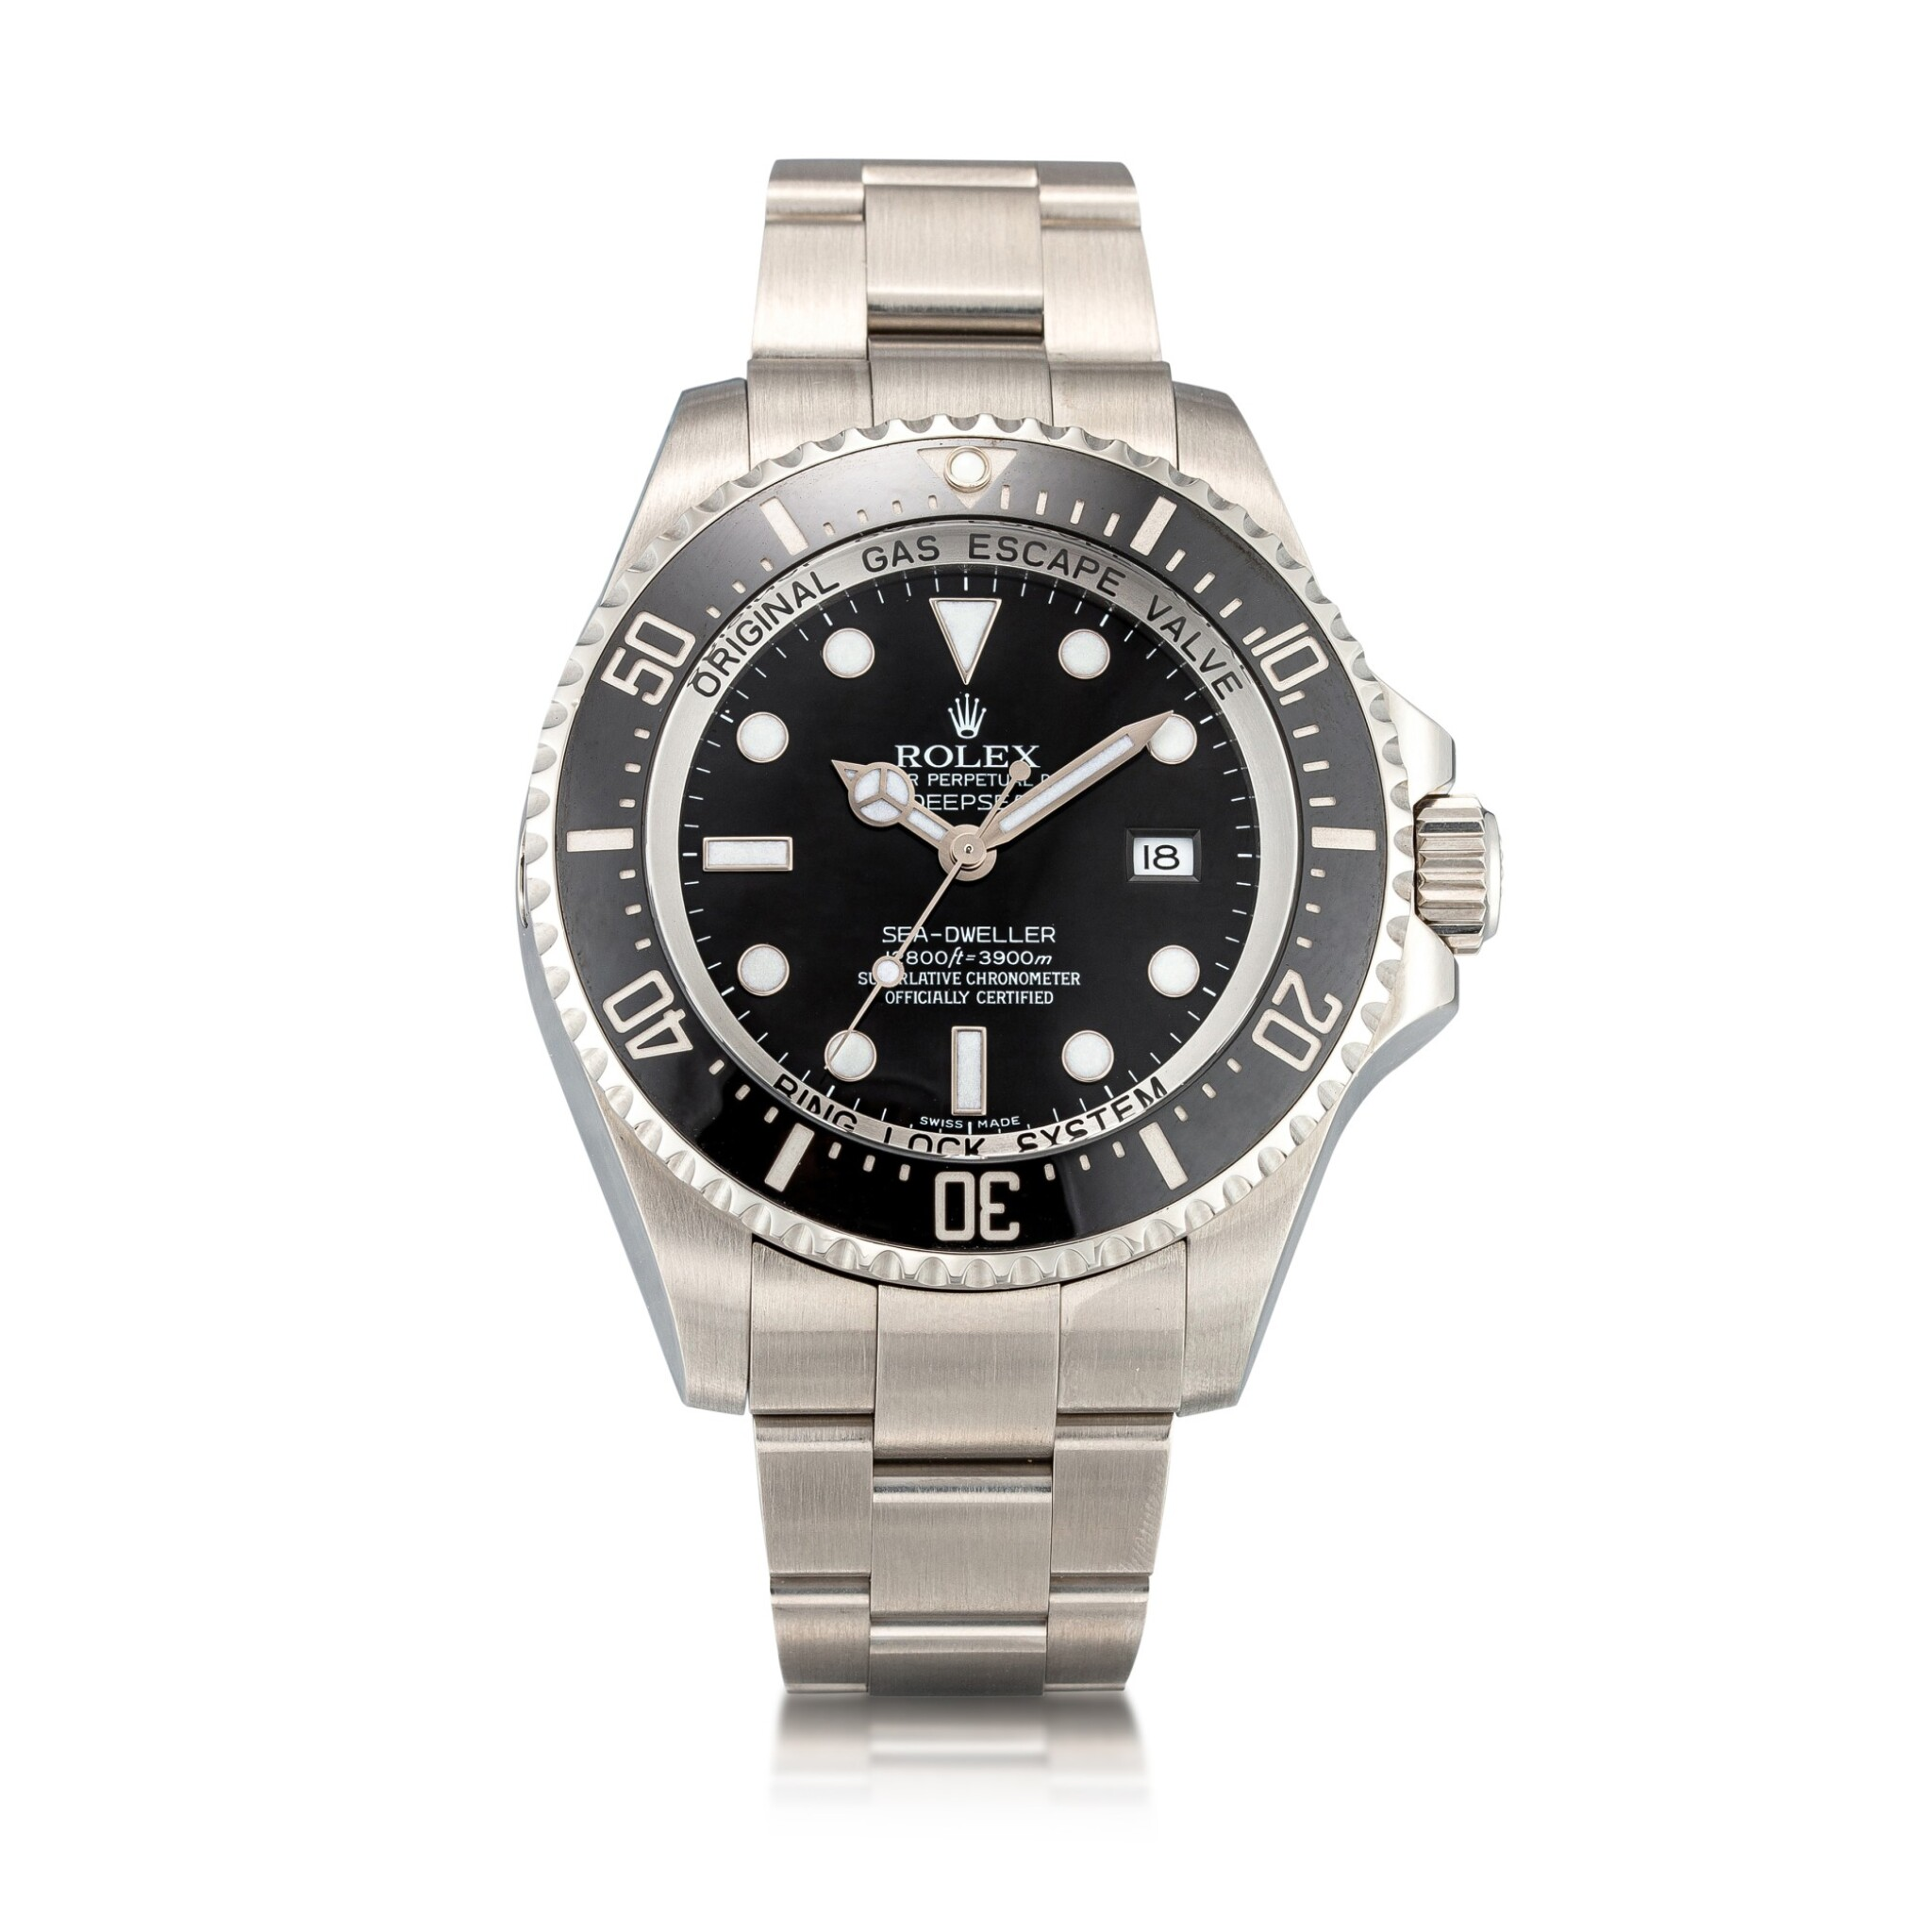 View 1 of Lot 8033. Rolex | Sea-Dweller Deepsea, Reference 116660, A stainless steel wristwatch with date and bracelet, Circa 2010 | 勞力士 | Sea-Dweller Deepsea 型號116660   精鋼鏈帶腕錶,備日期顯示,約2010年製.